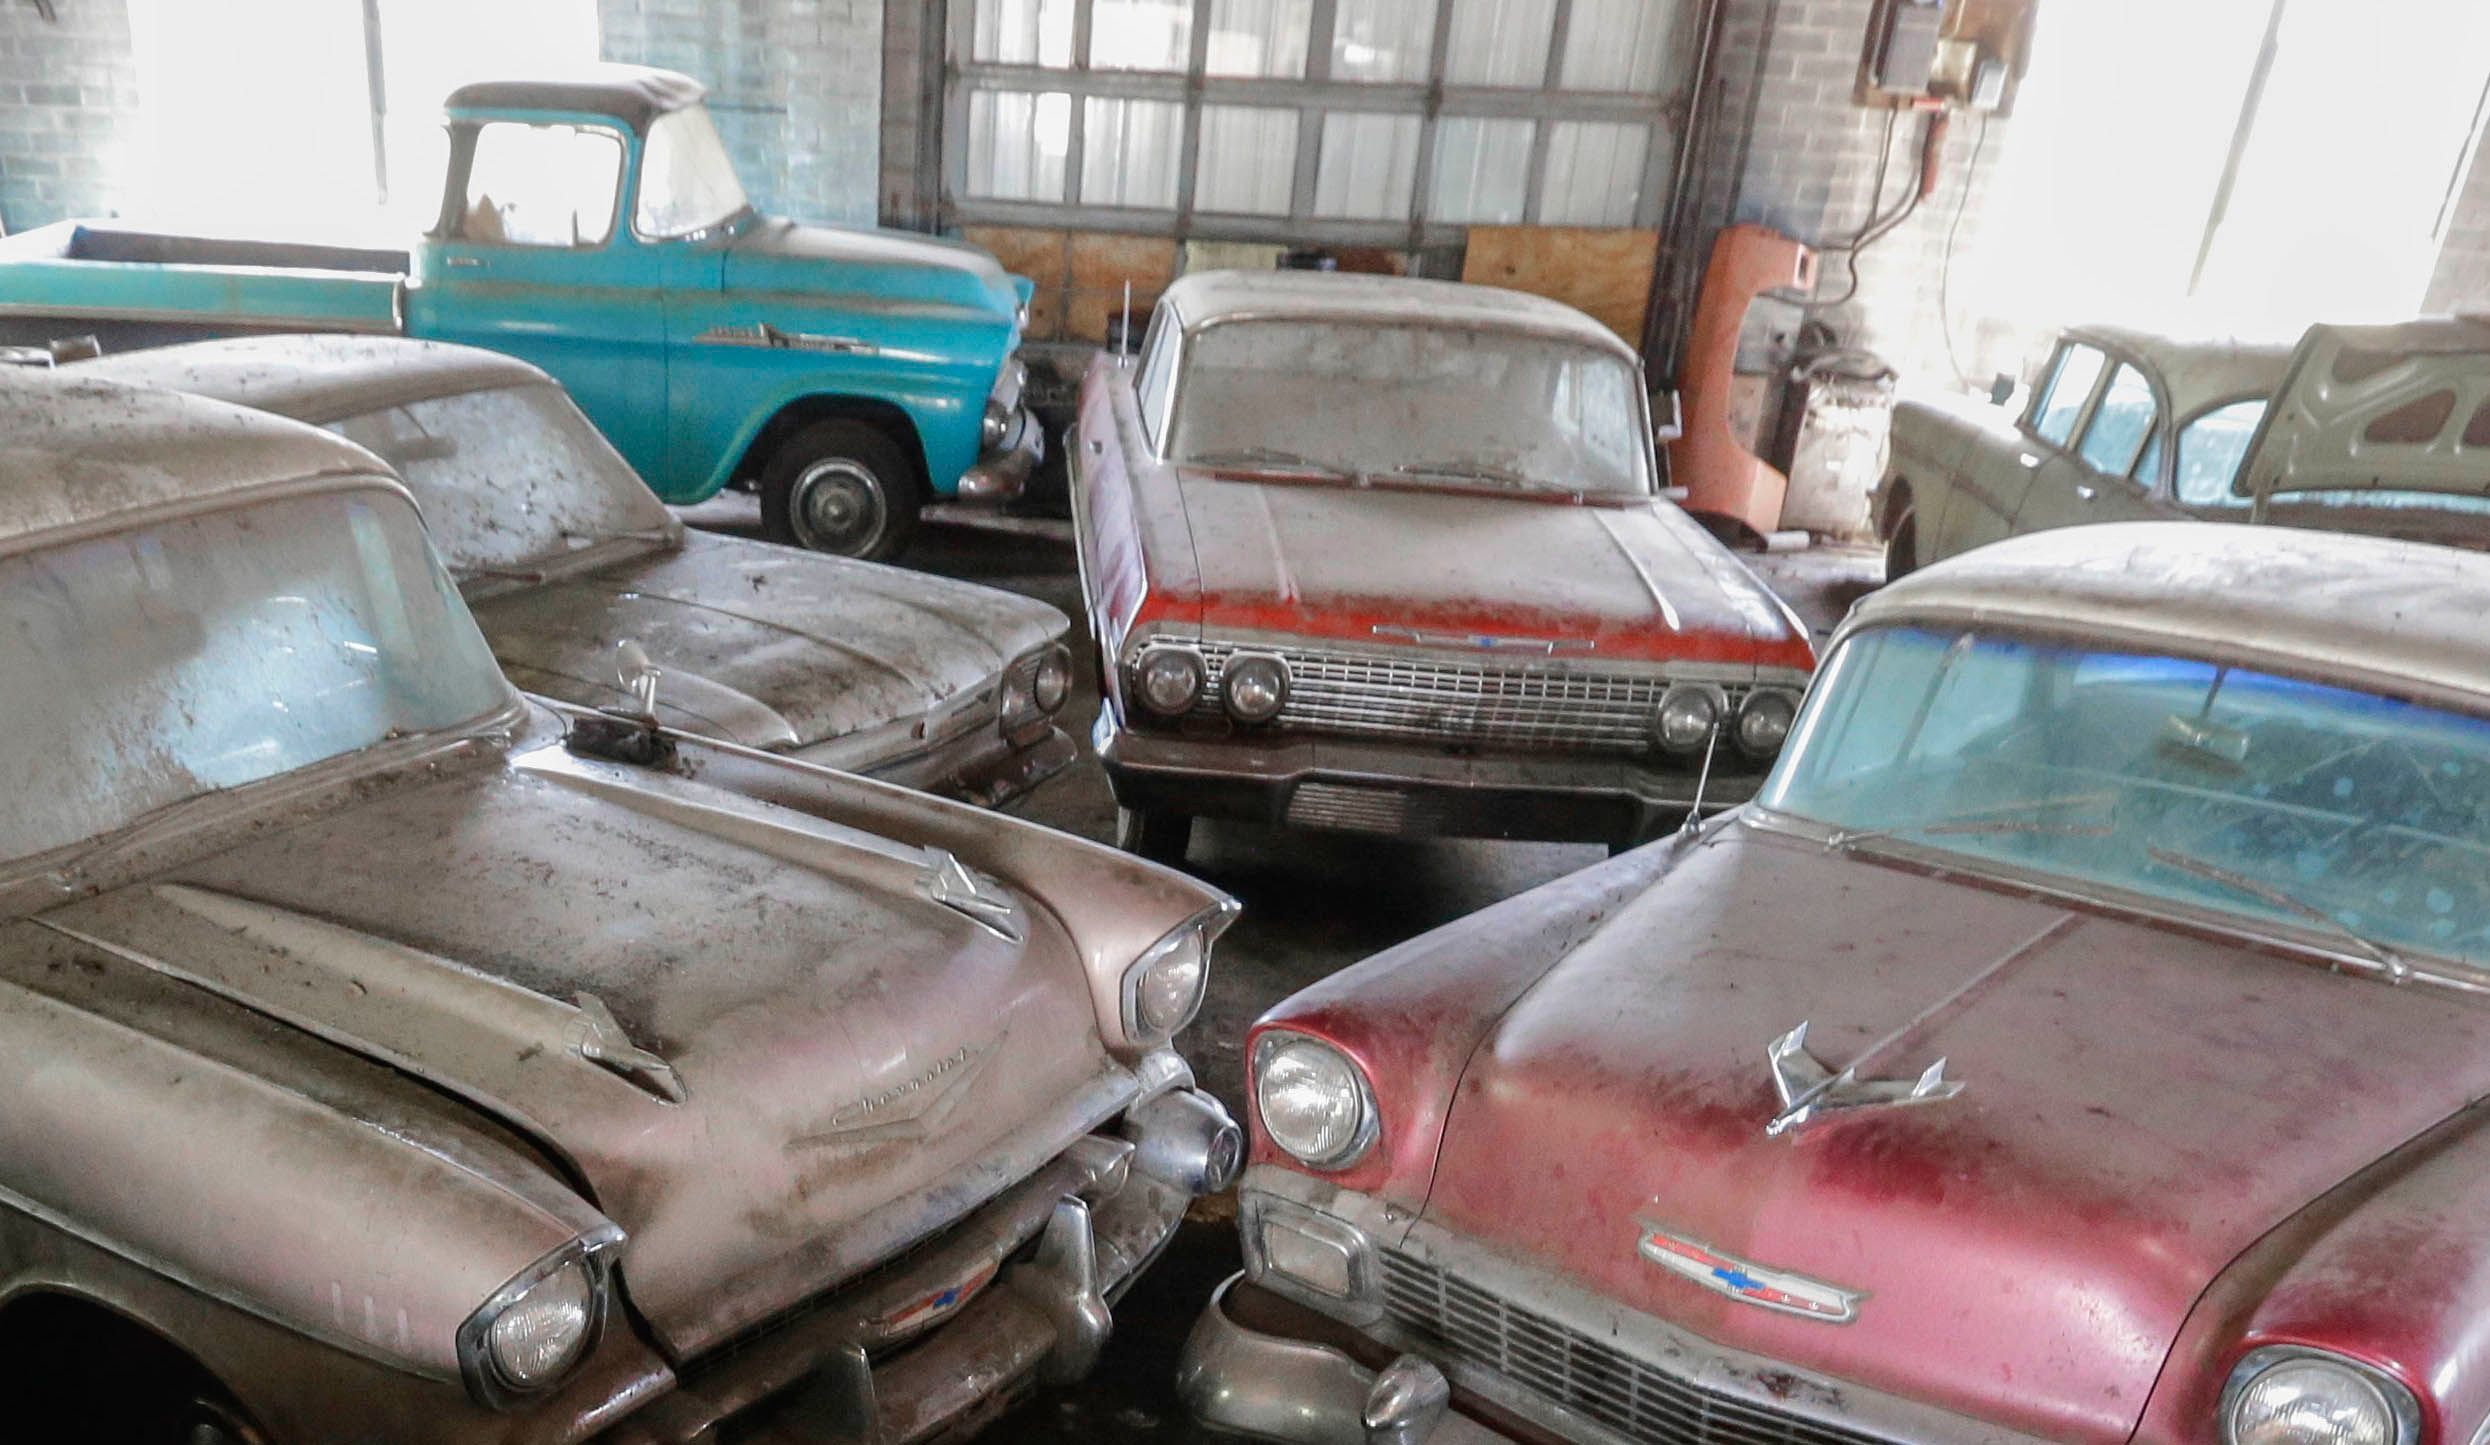 Chevrolet cars fill the showroom of the former Lambrecht Chevrolet car dealership in Pierce, Neb.in August 2013. The 1963 Chevrolet Impala is in the center back of the photo.